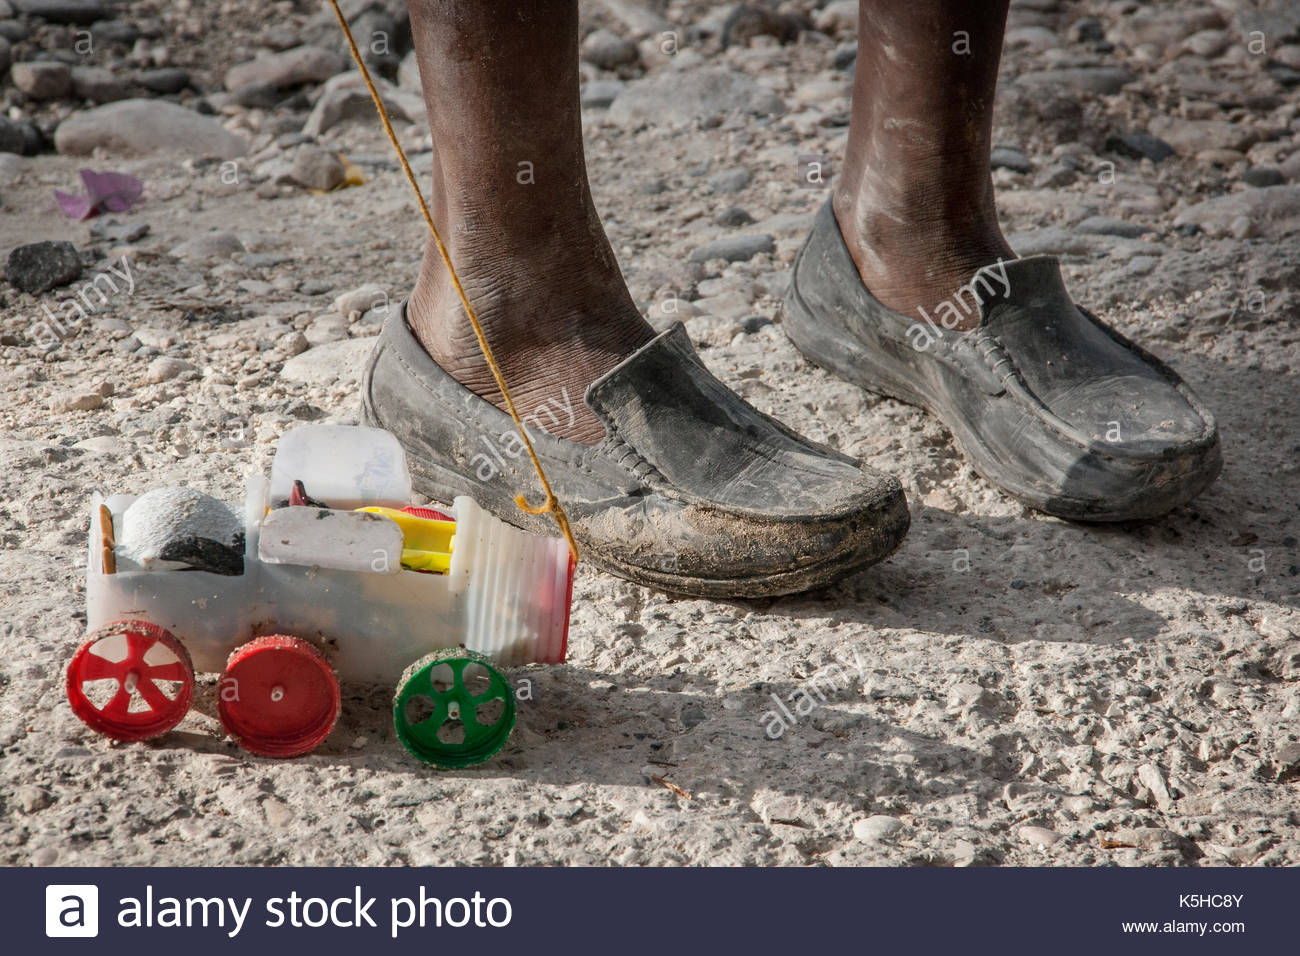 Home made toy held by a boy in the streets of Haiti Stock Photo